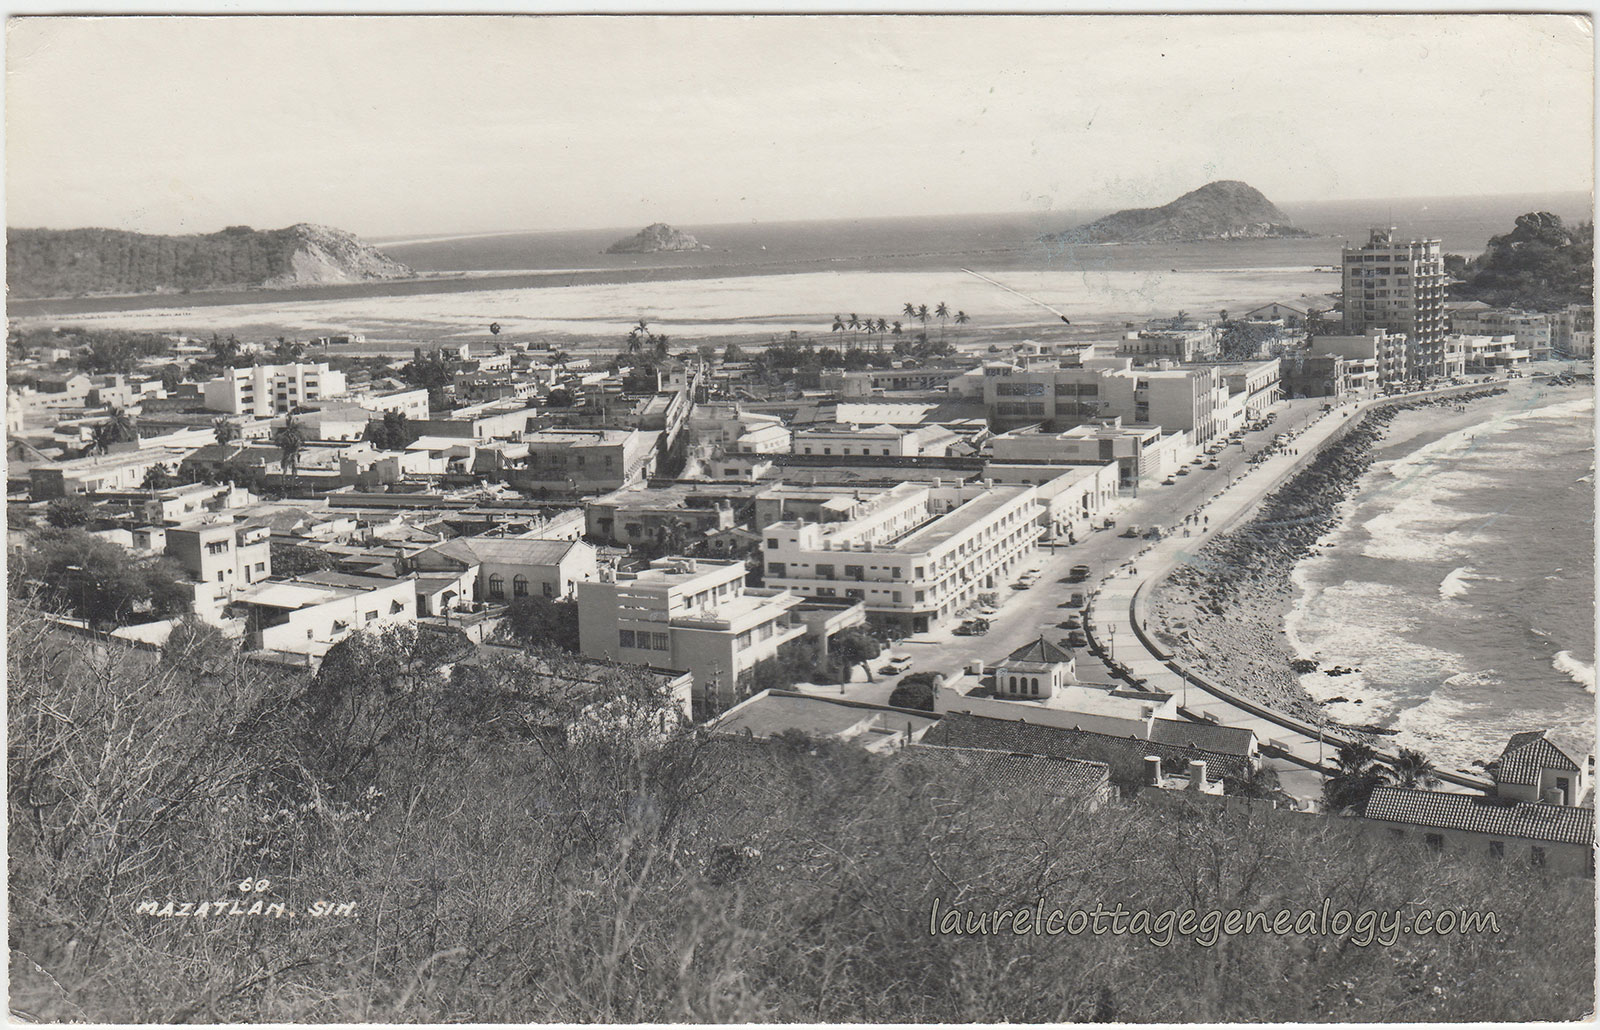 Mazatlan in 1958 (Photo: laurelcottagegenealogy.com)